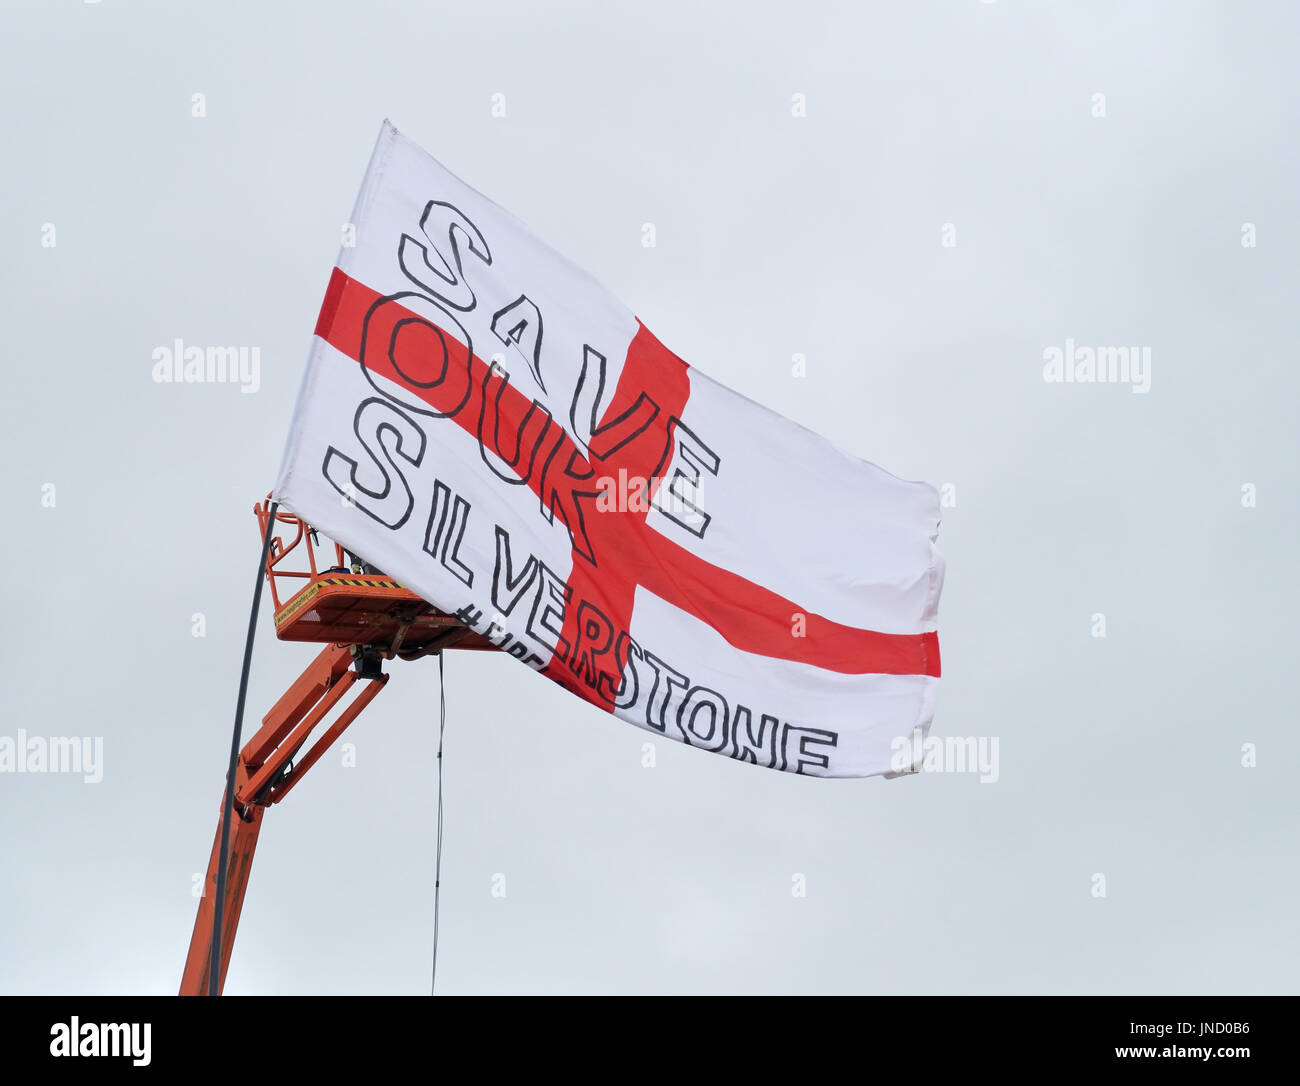 SaveOurSilverstone Flag, F1 Circuit July 2017 - Stock Image